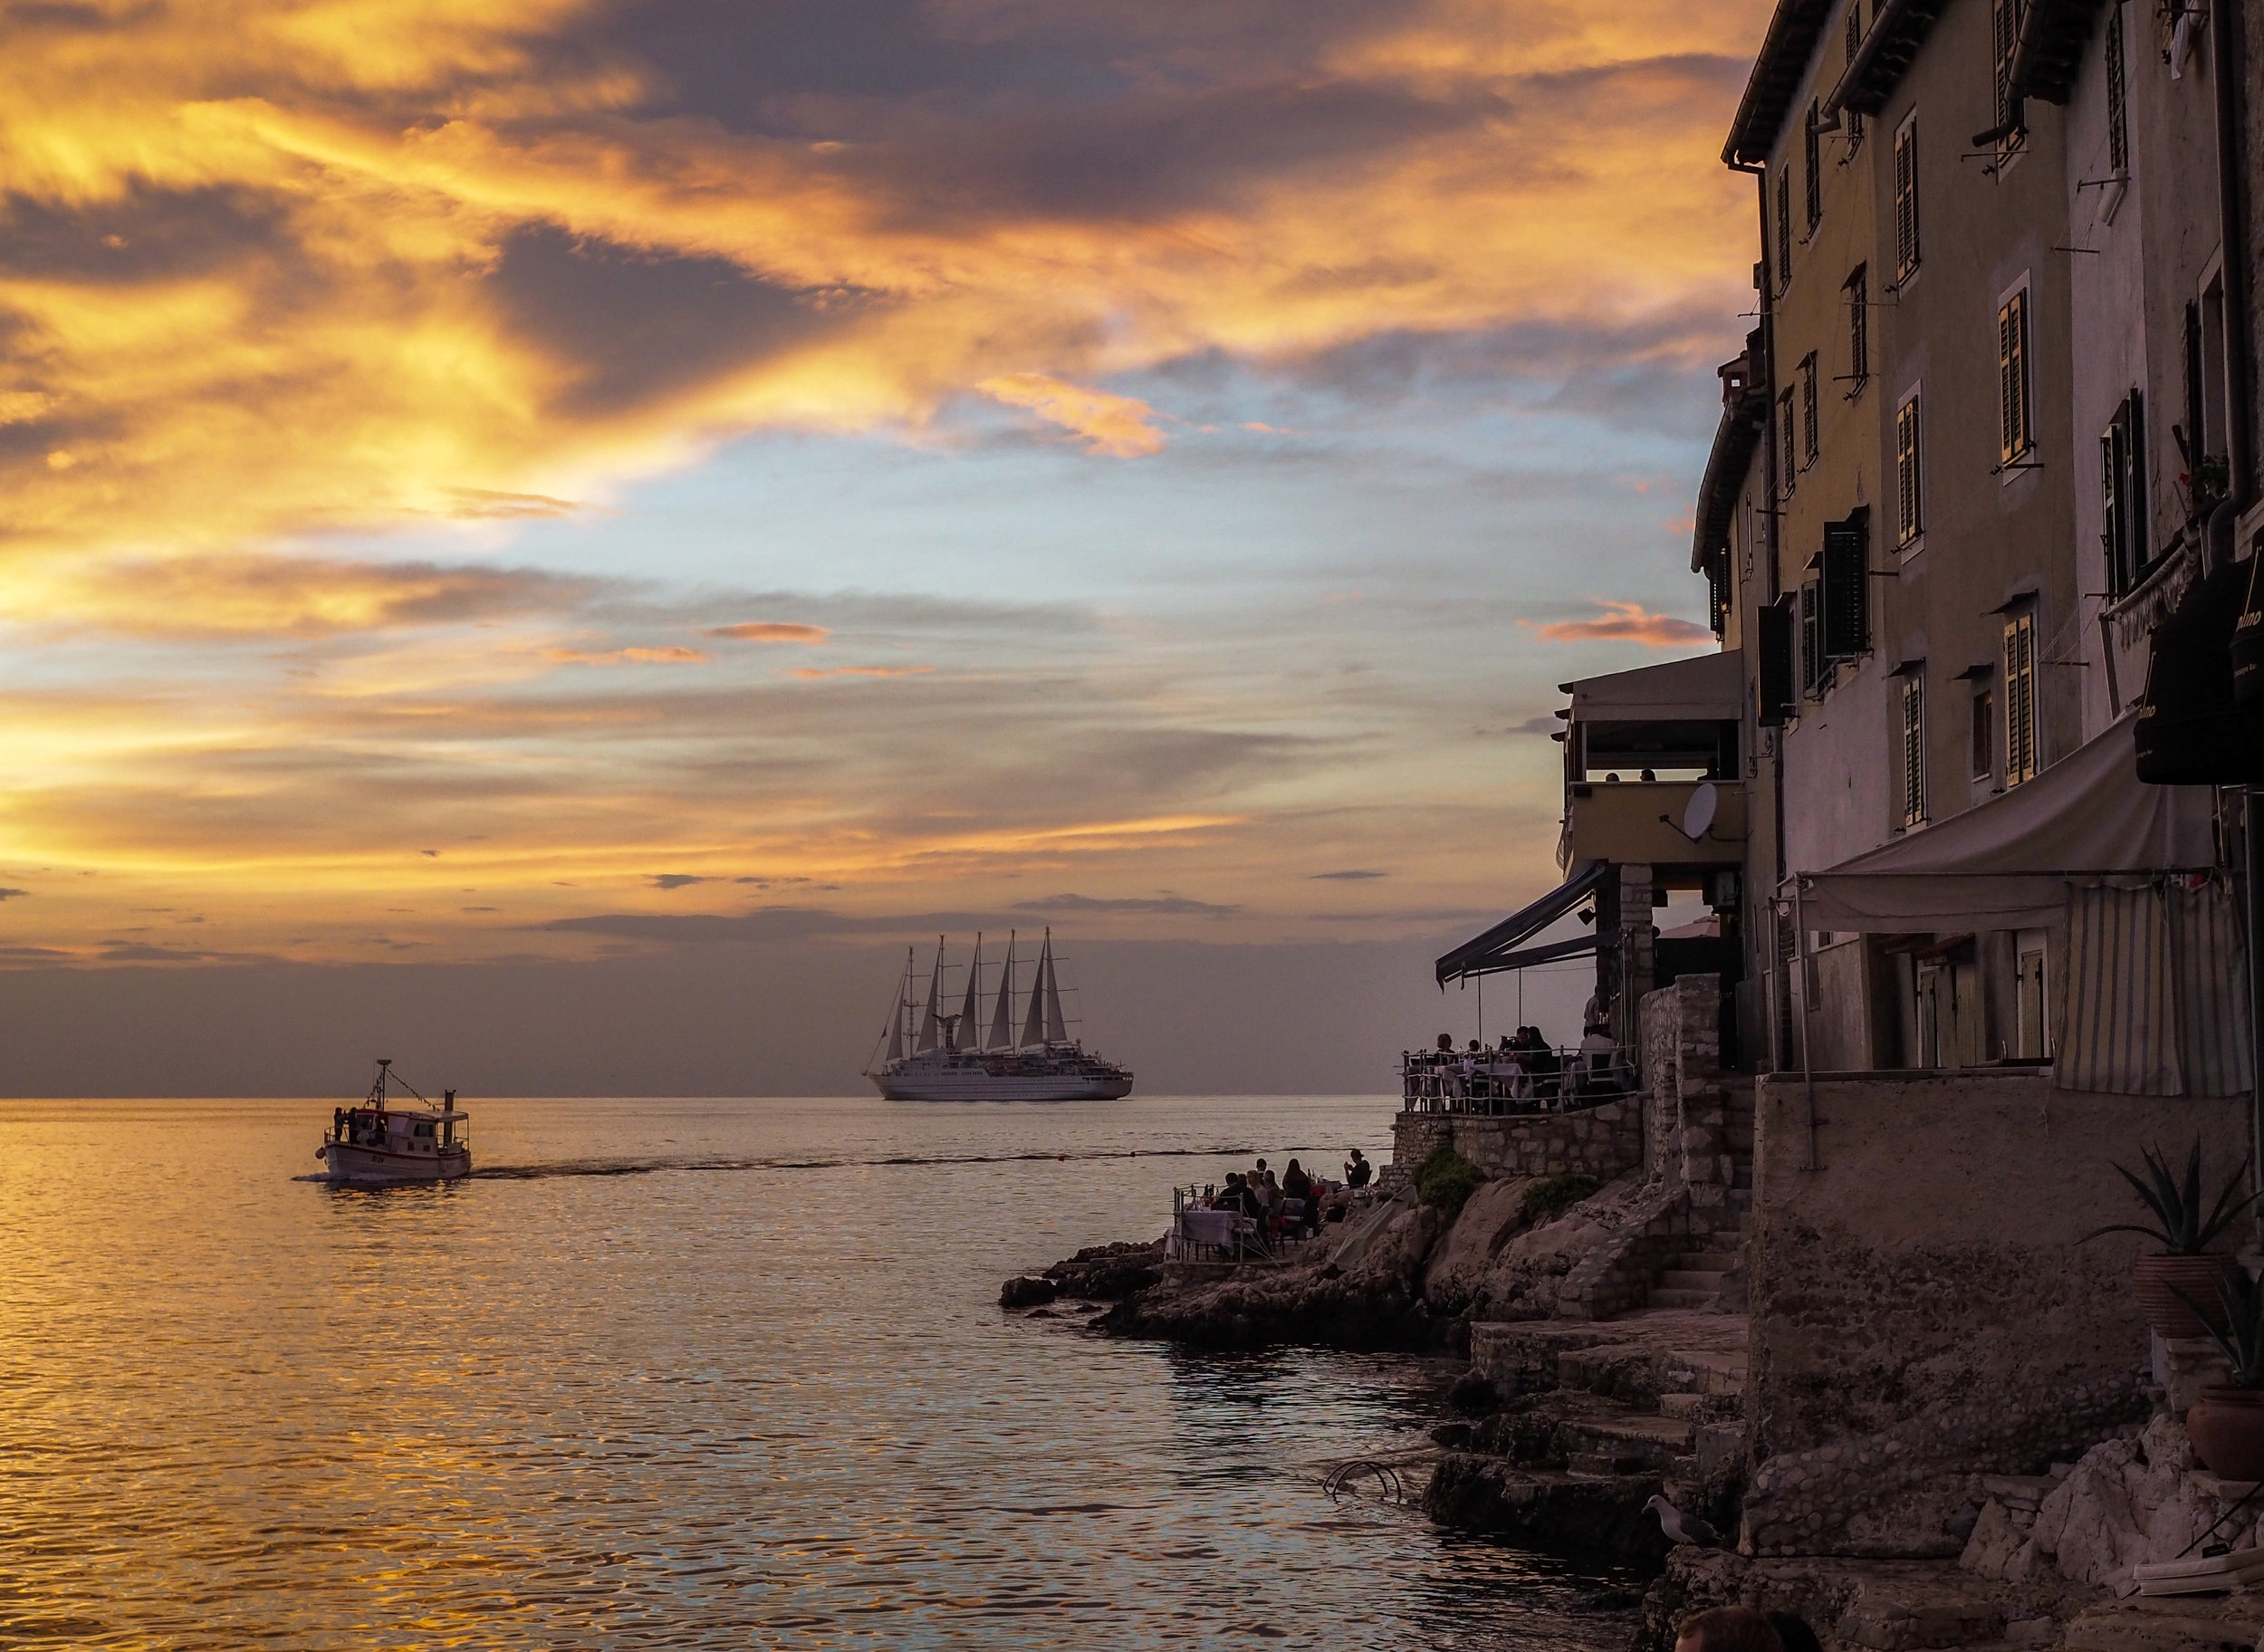 I became a travel photographer while enjoying cocktails at a bar in Rovinj, Croatia.